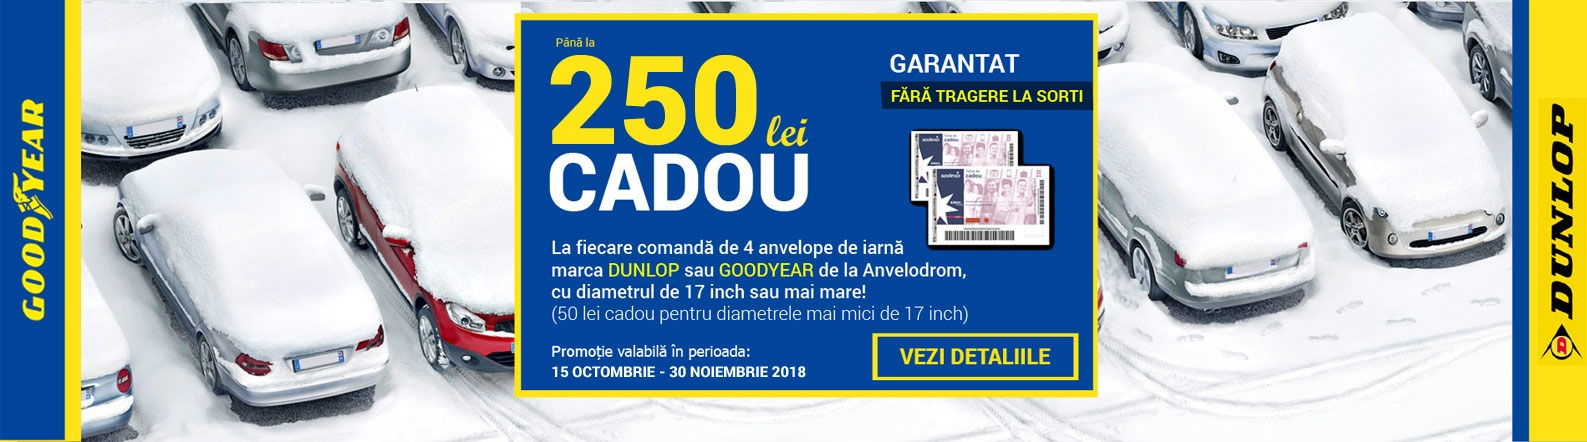 Promotie anvelope iarna Goodyear Dunlop